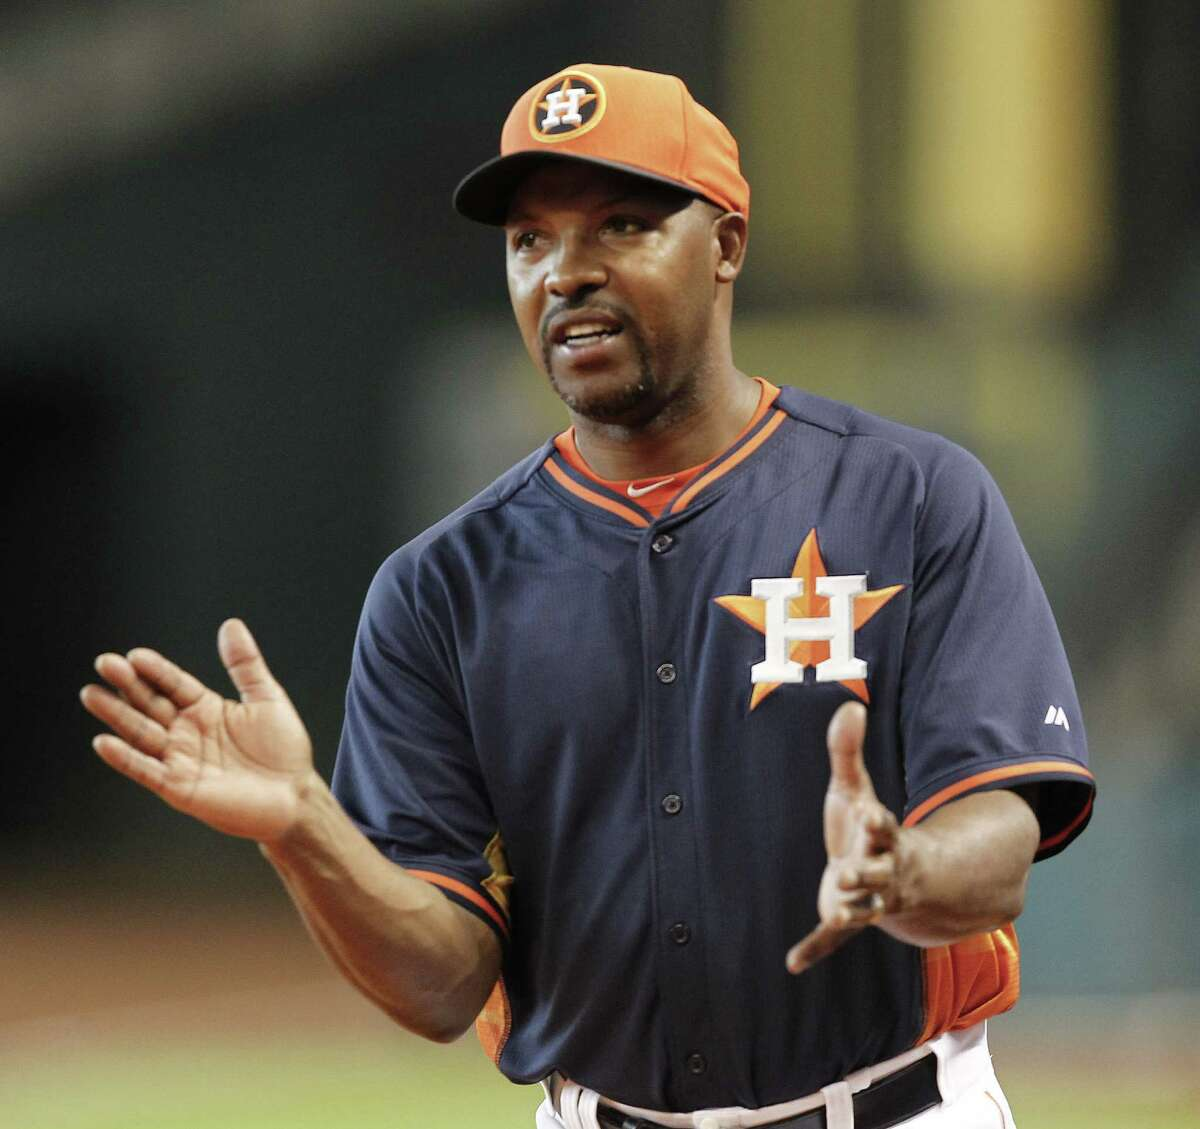 FILE - SEPTEMBER 1: According to reports September 1, 2014, the Houston Astros have fired manager Bo Porter. HOUSTON, TX - AUGUST 29: Bo Porter #16 of the Houston Astros throws batting practice before playing the Texas Rangers at Minute Maid Park on August 29, 2014 in Houston, Texas.